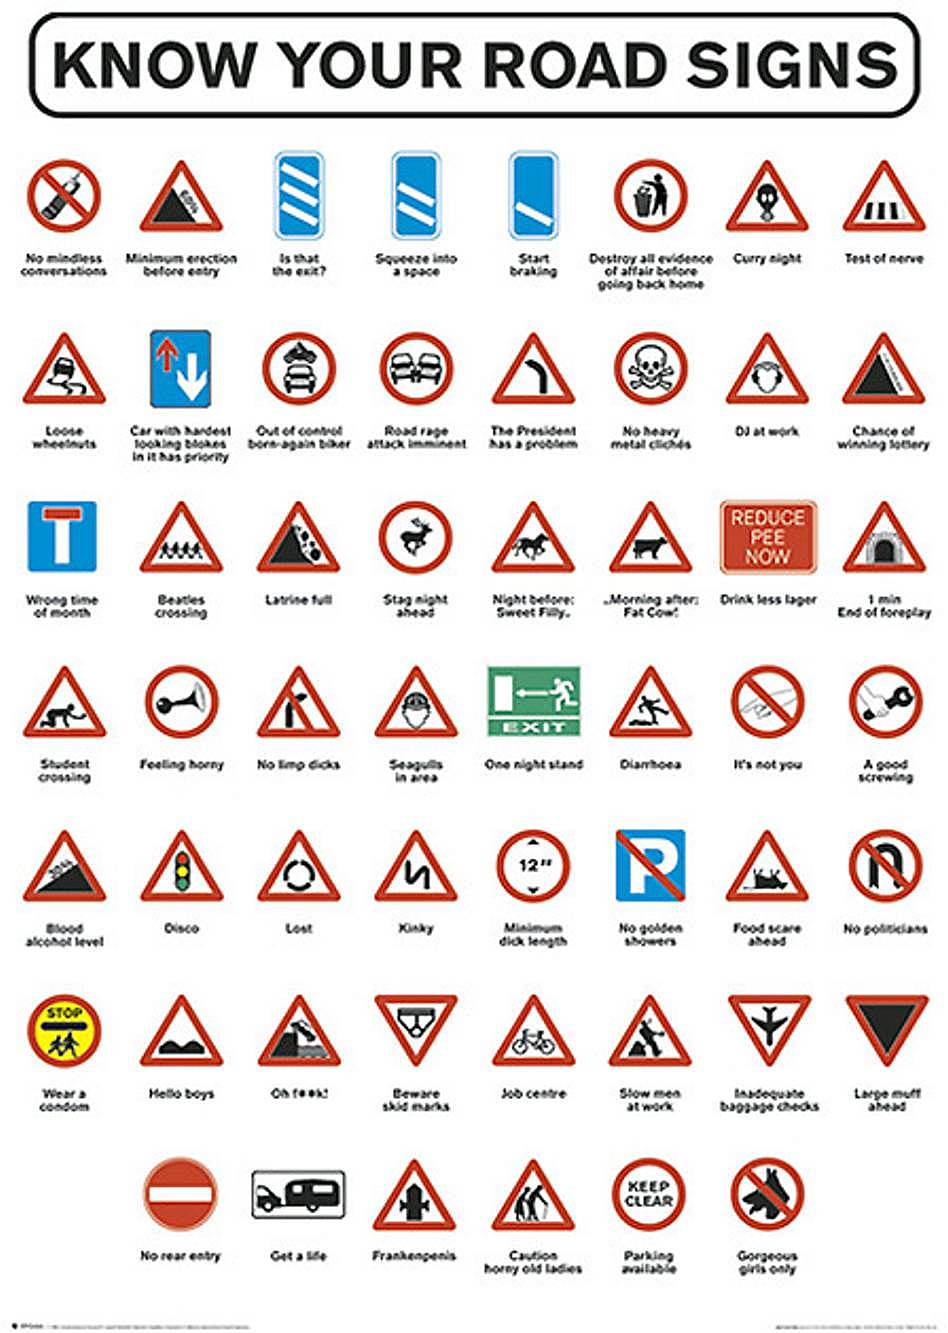 as what you can see road signs i know it is obvious but these are the